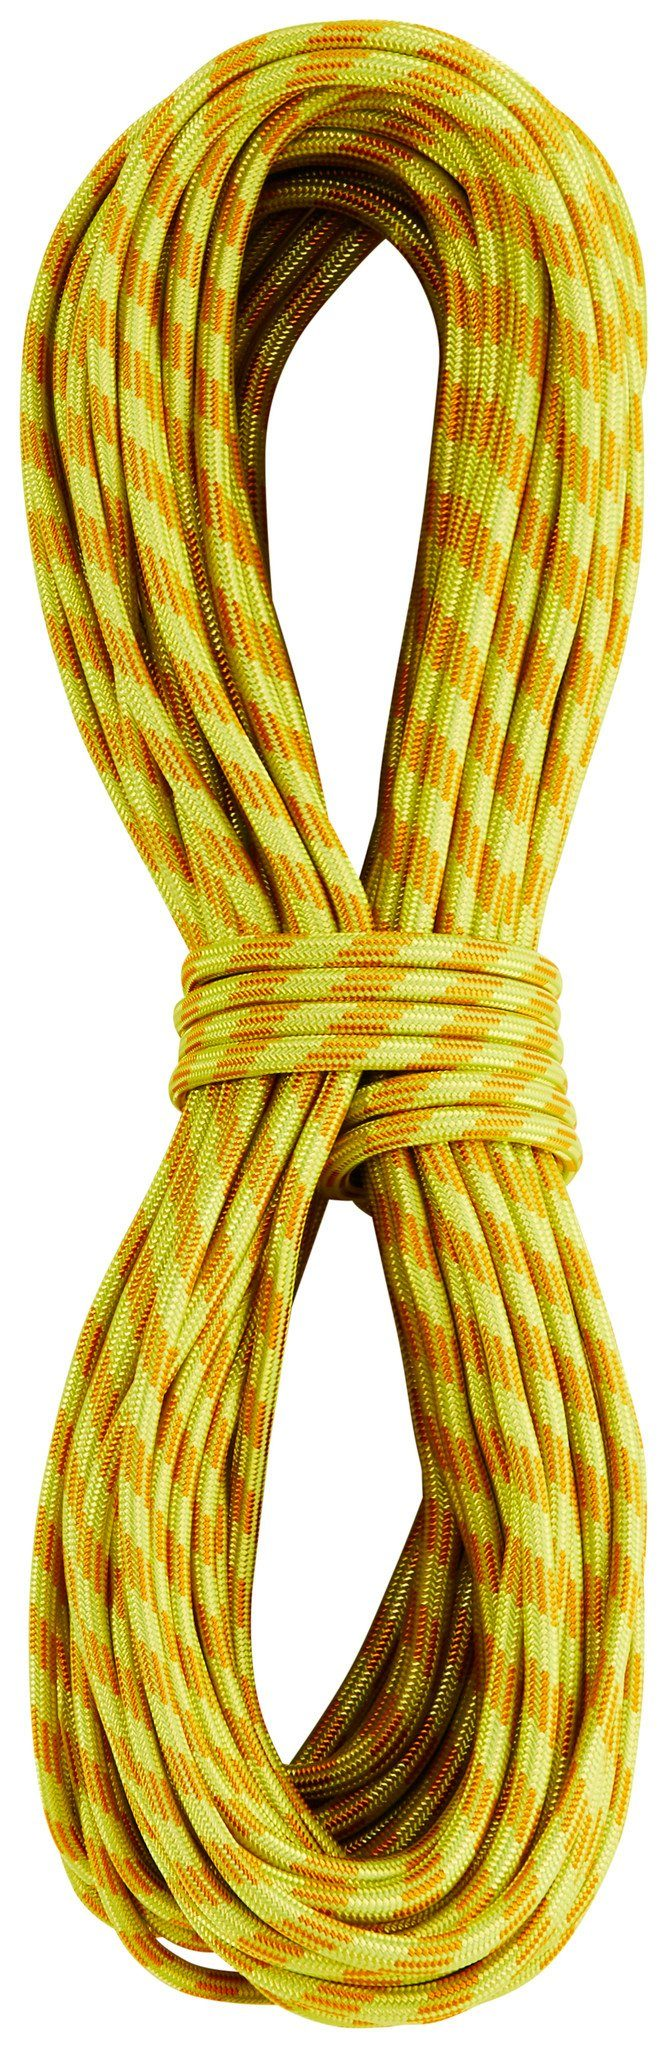 Edelrid Kletterseil »Confidence Rope 8mm 40m«